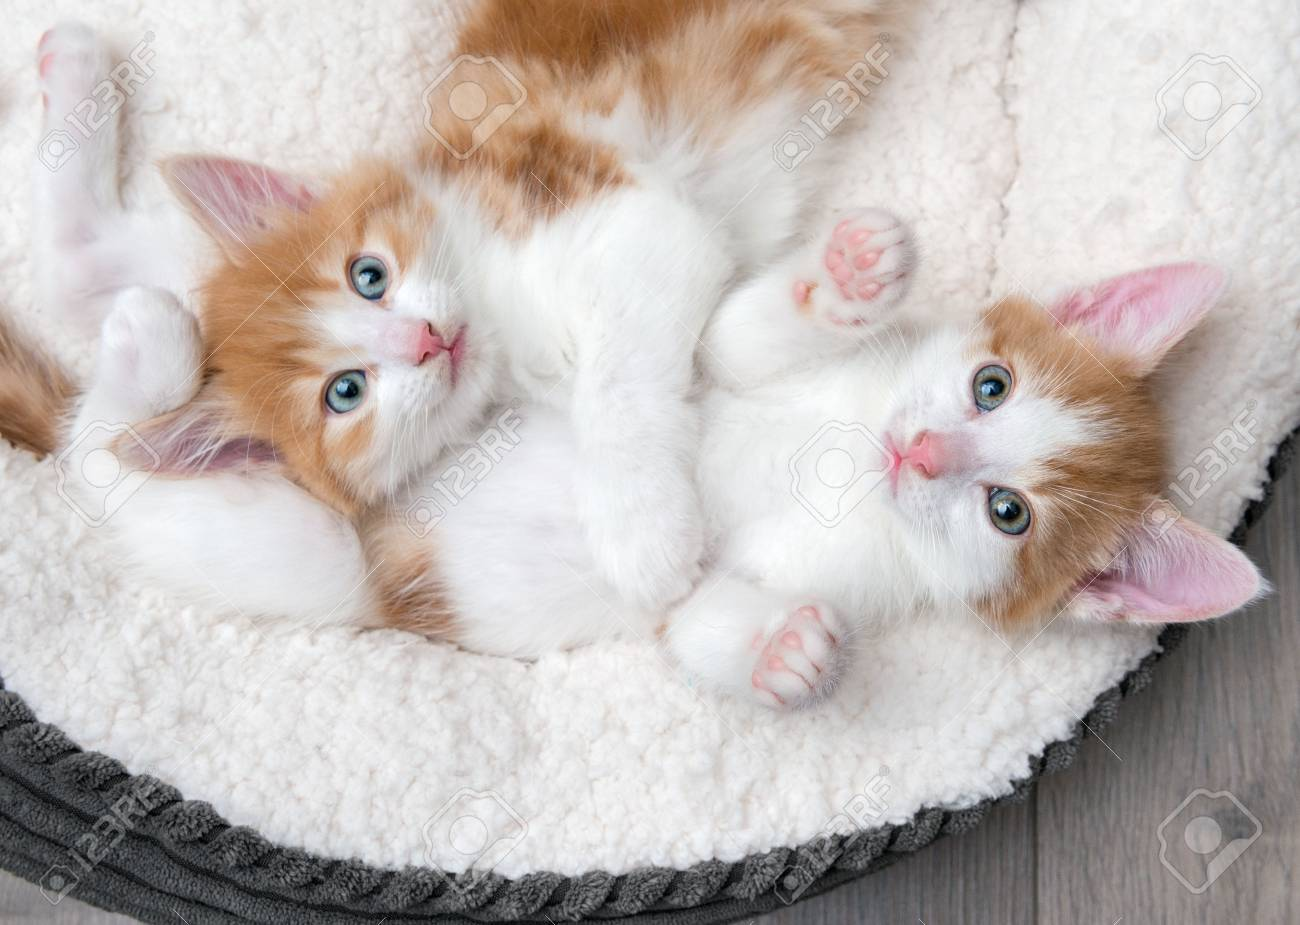 Kittens images blue eyed kitties HD wallpaper and background photos